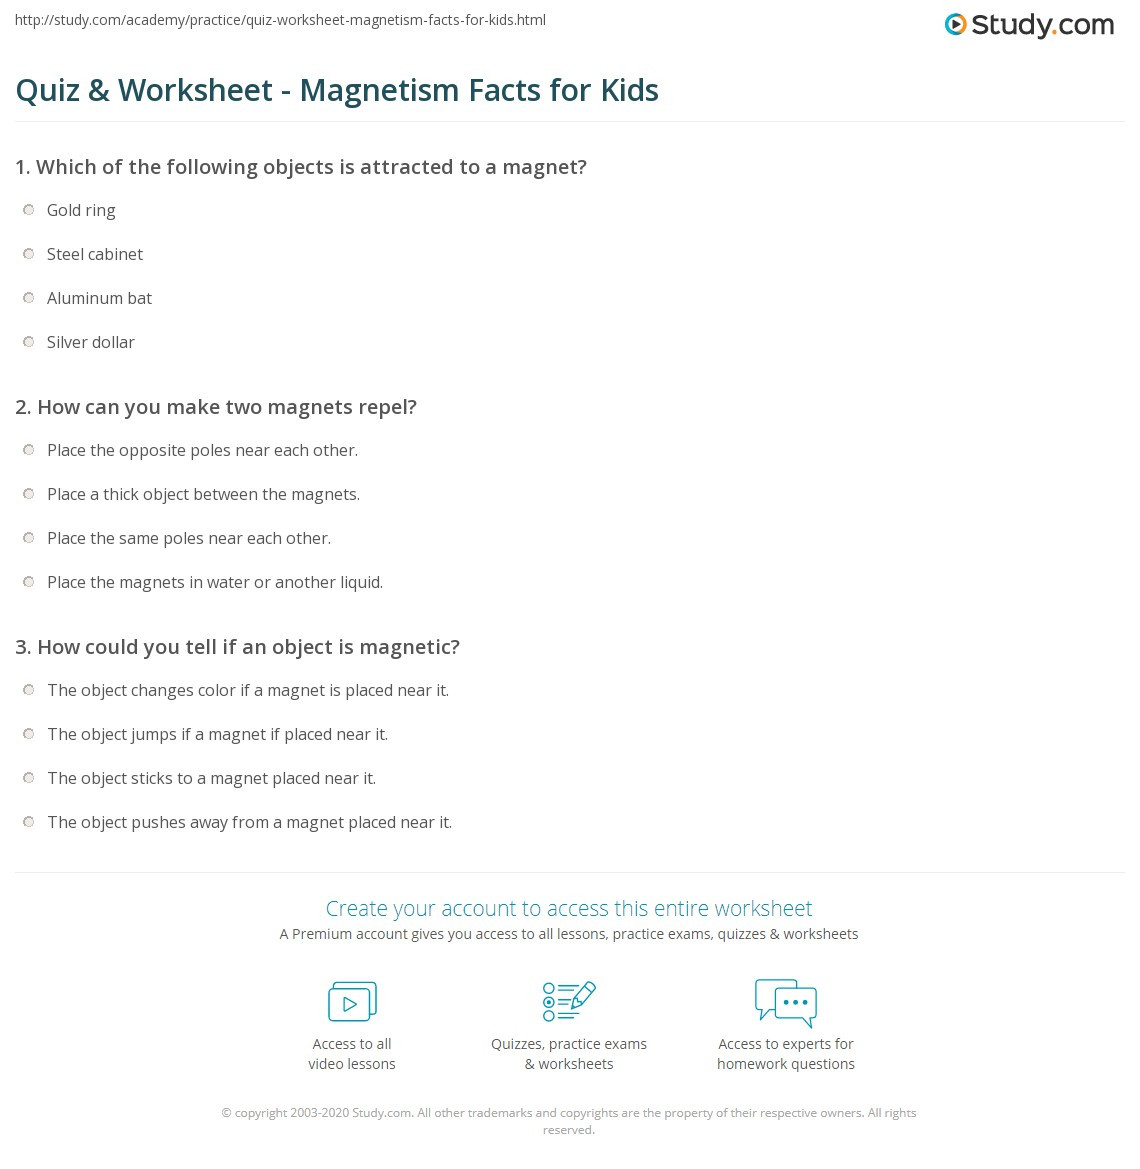 Magnetism Worksheet for High School Quiz & Worksheet Magnetism Facts for Kids